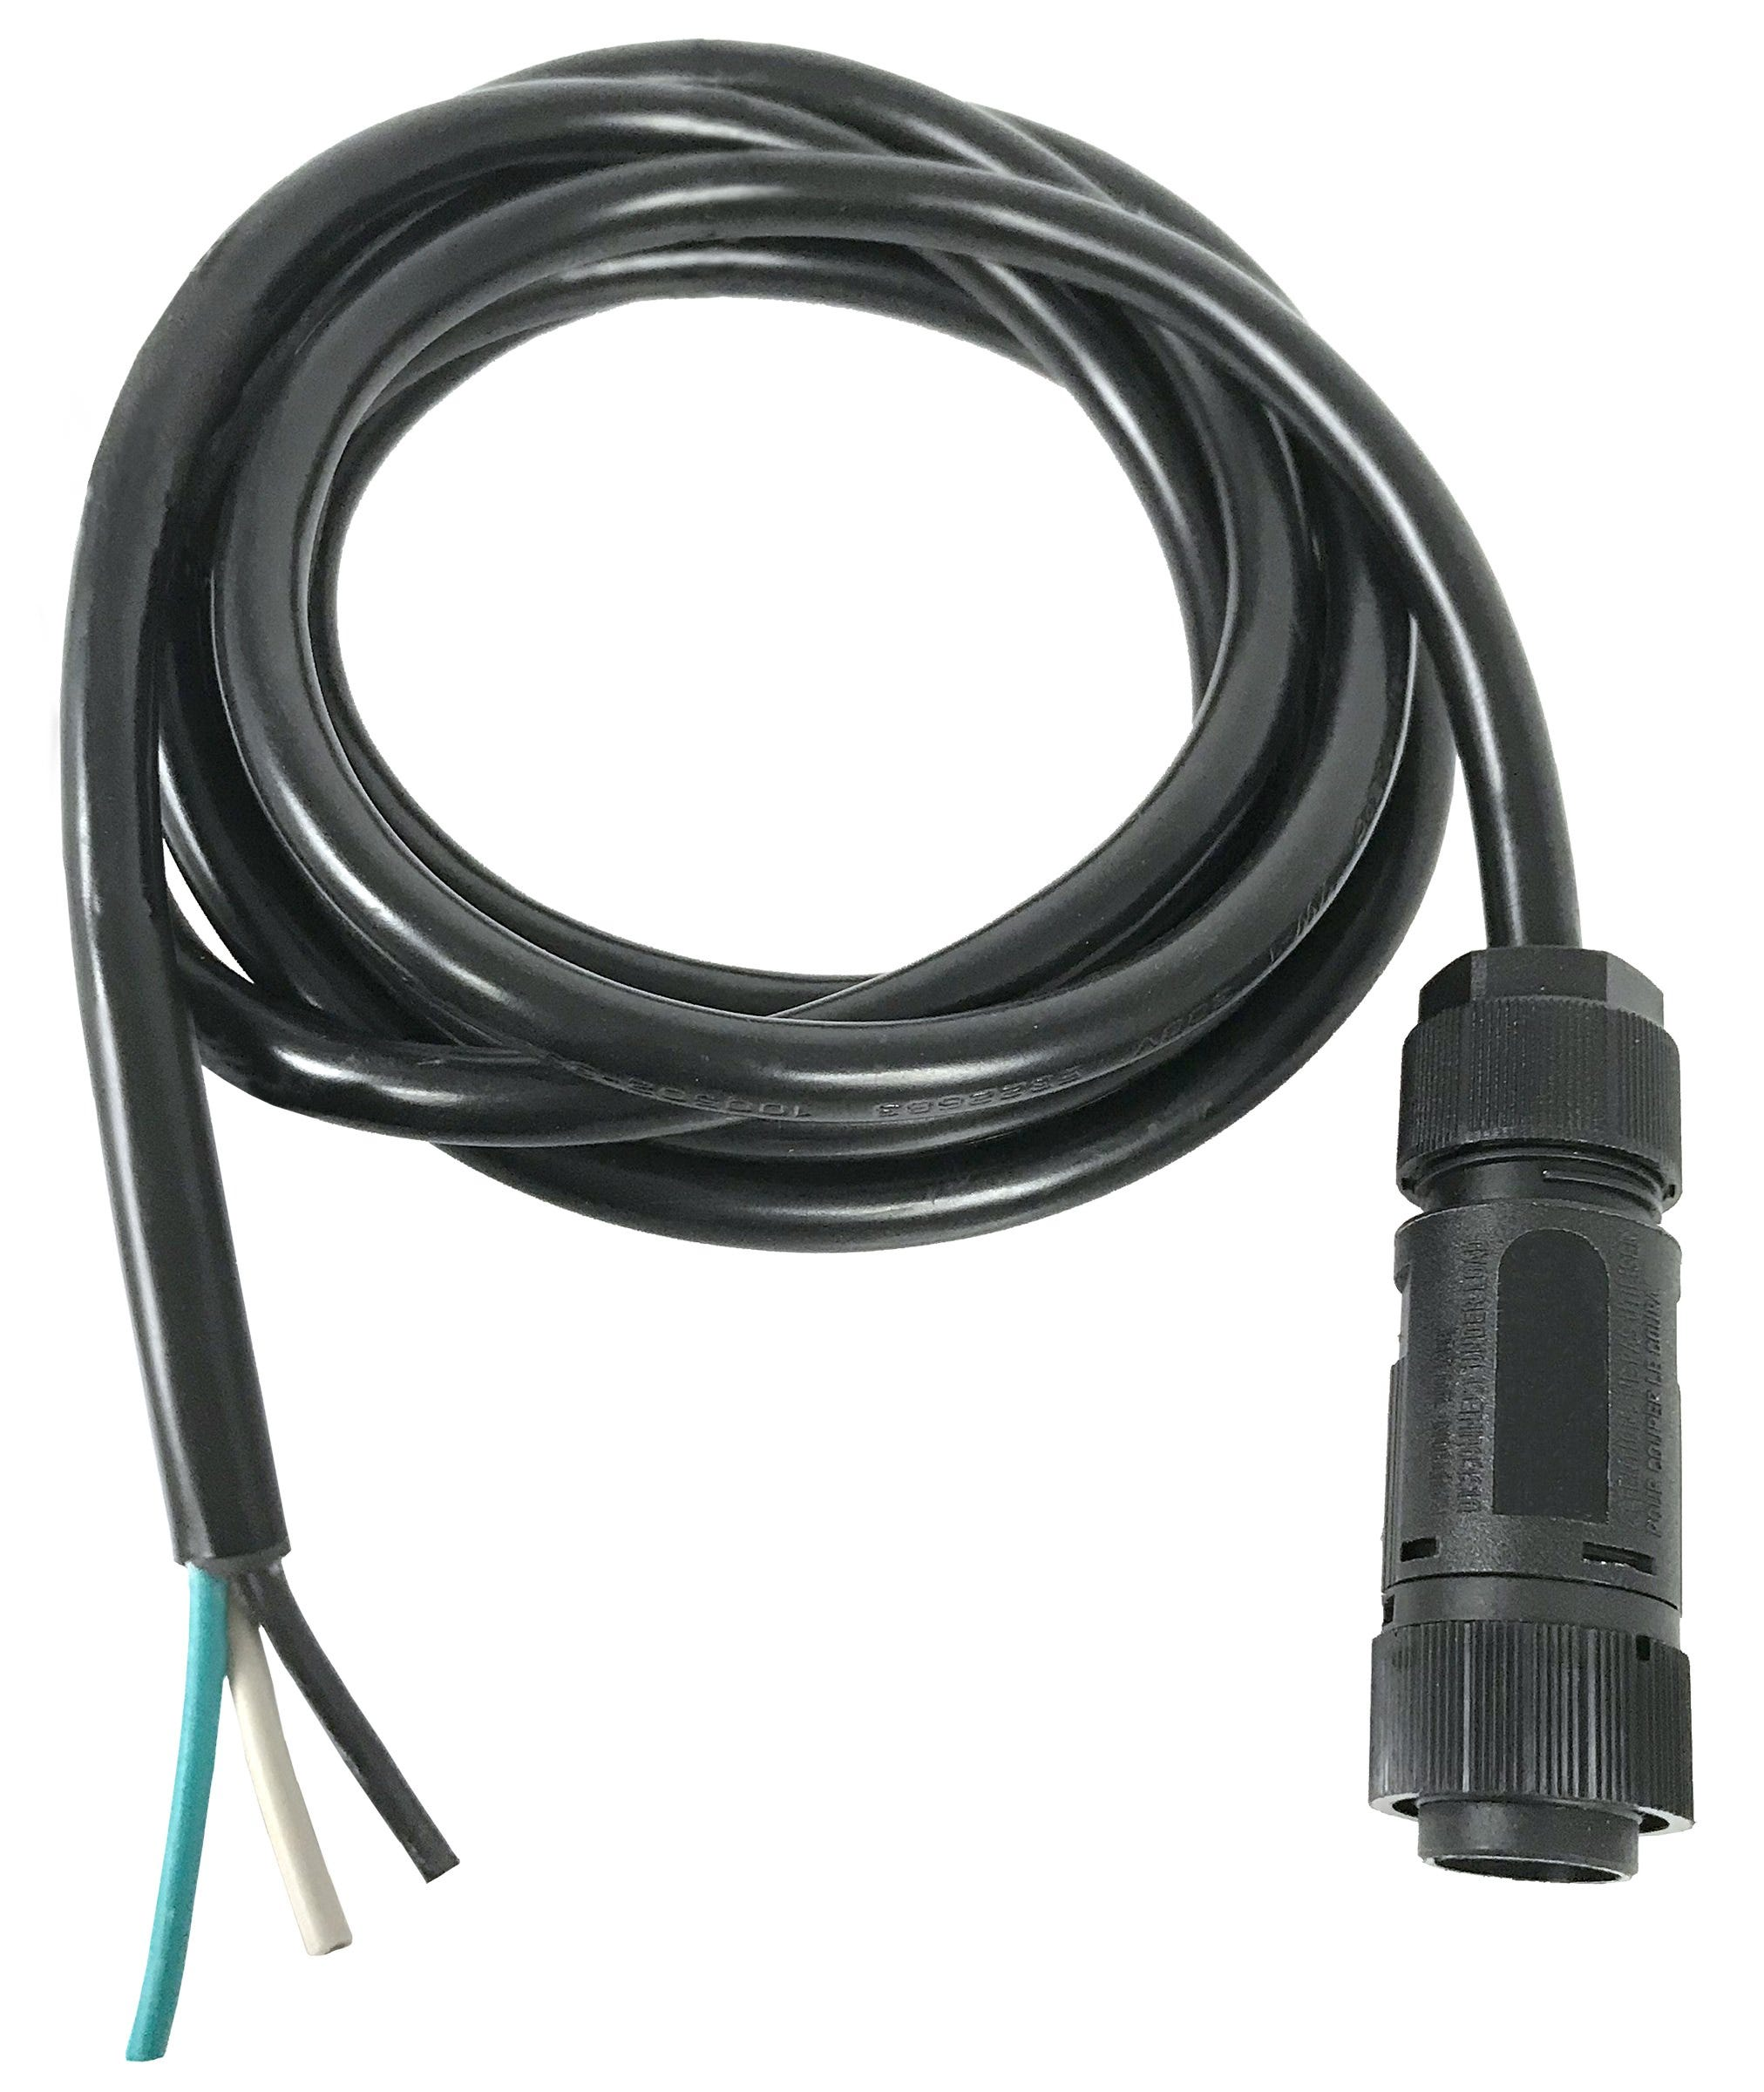 Photograph of Gavita 8 ft Power Cord 277 Volt for Gavita LED